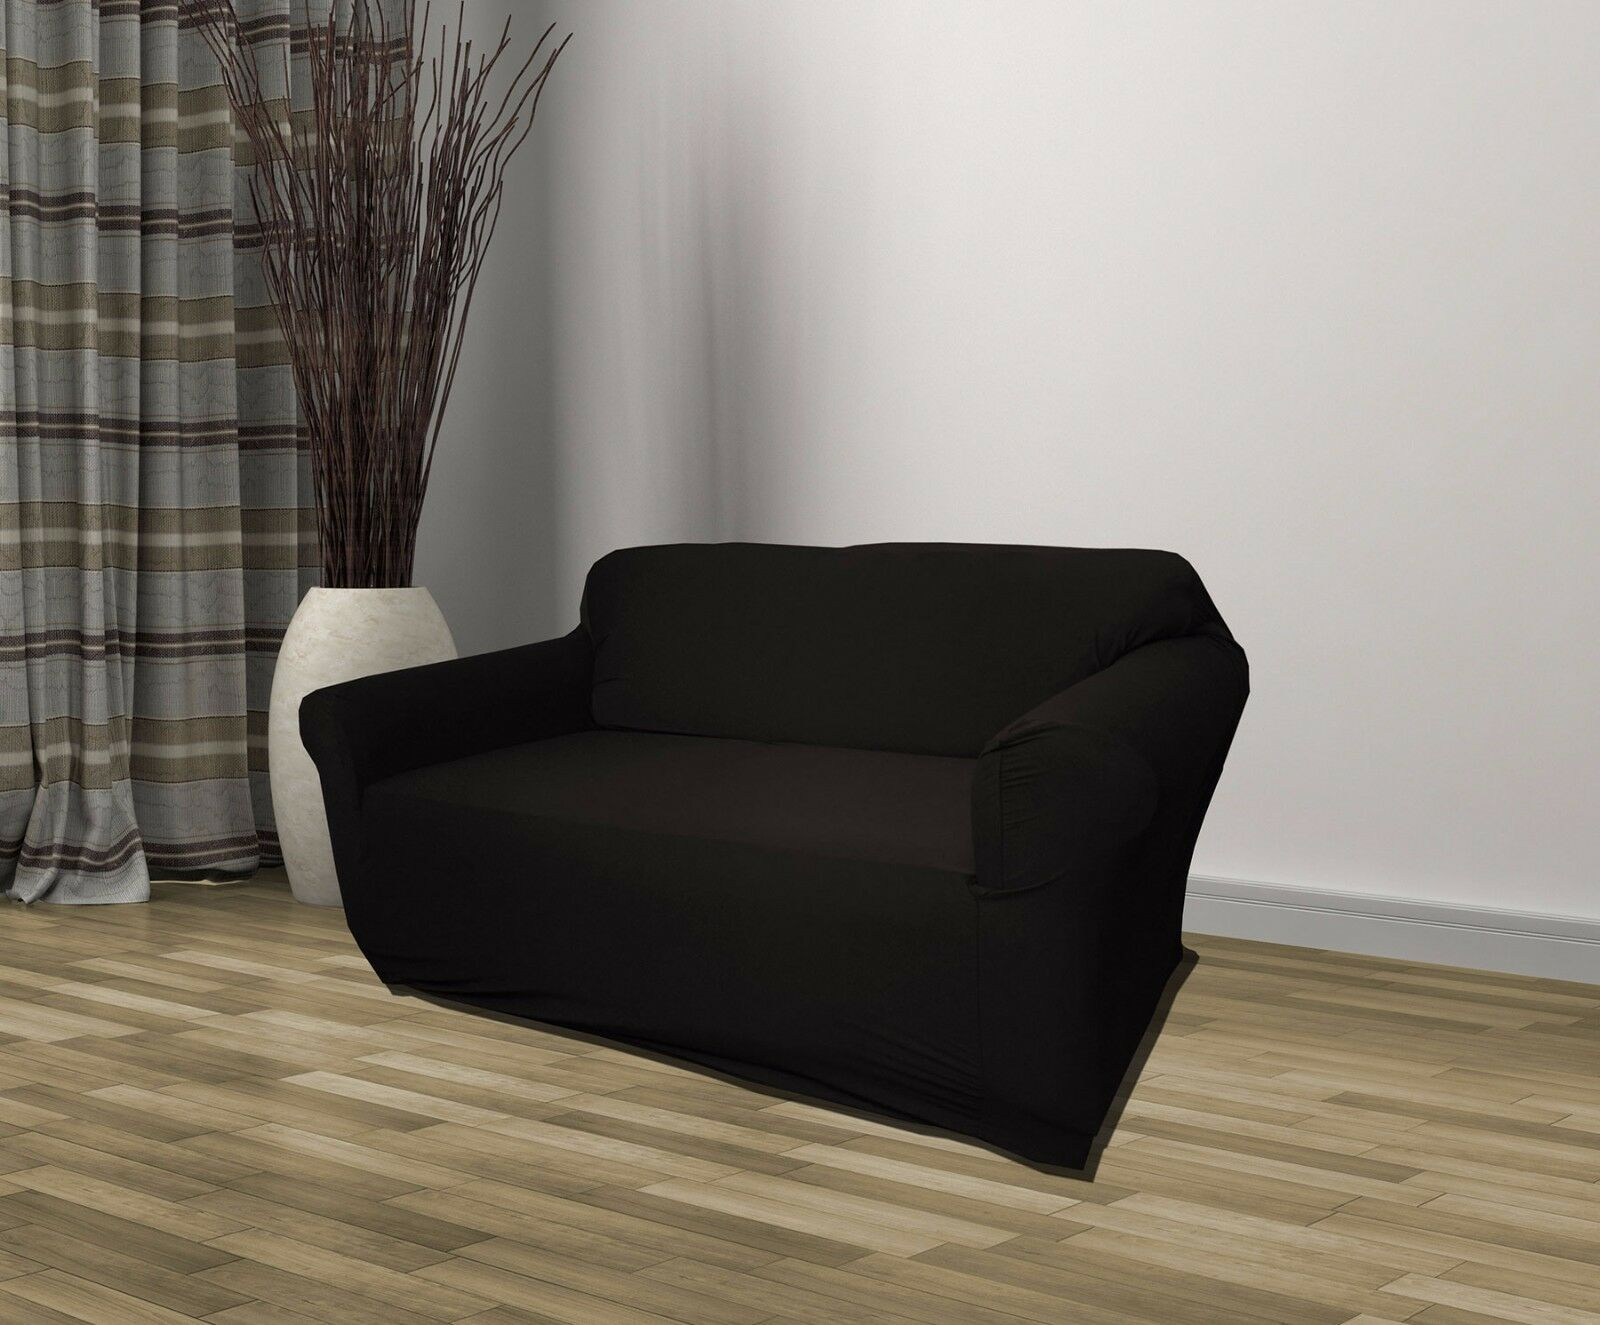 Slip Cover Chairs Black Jersey Sofa Stretch Slipcover Couch Cover Chair